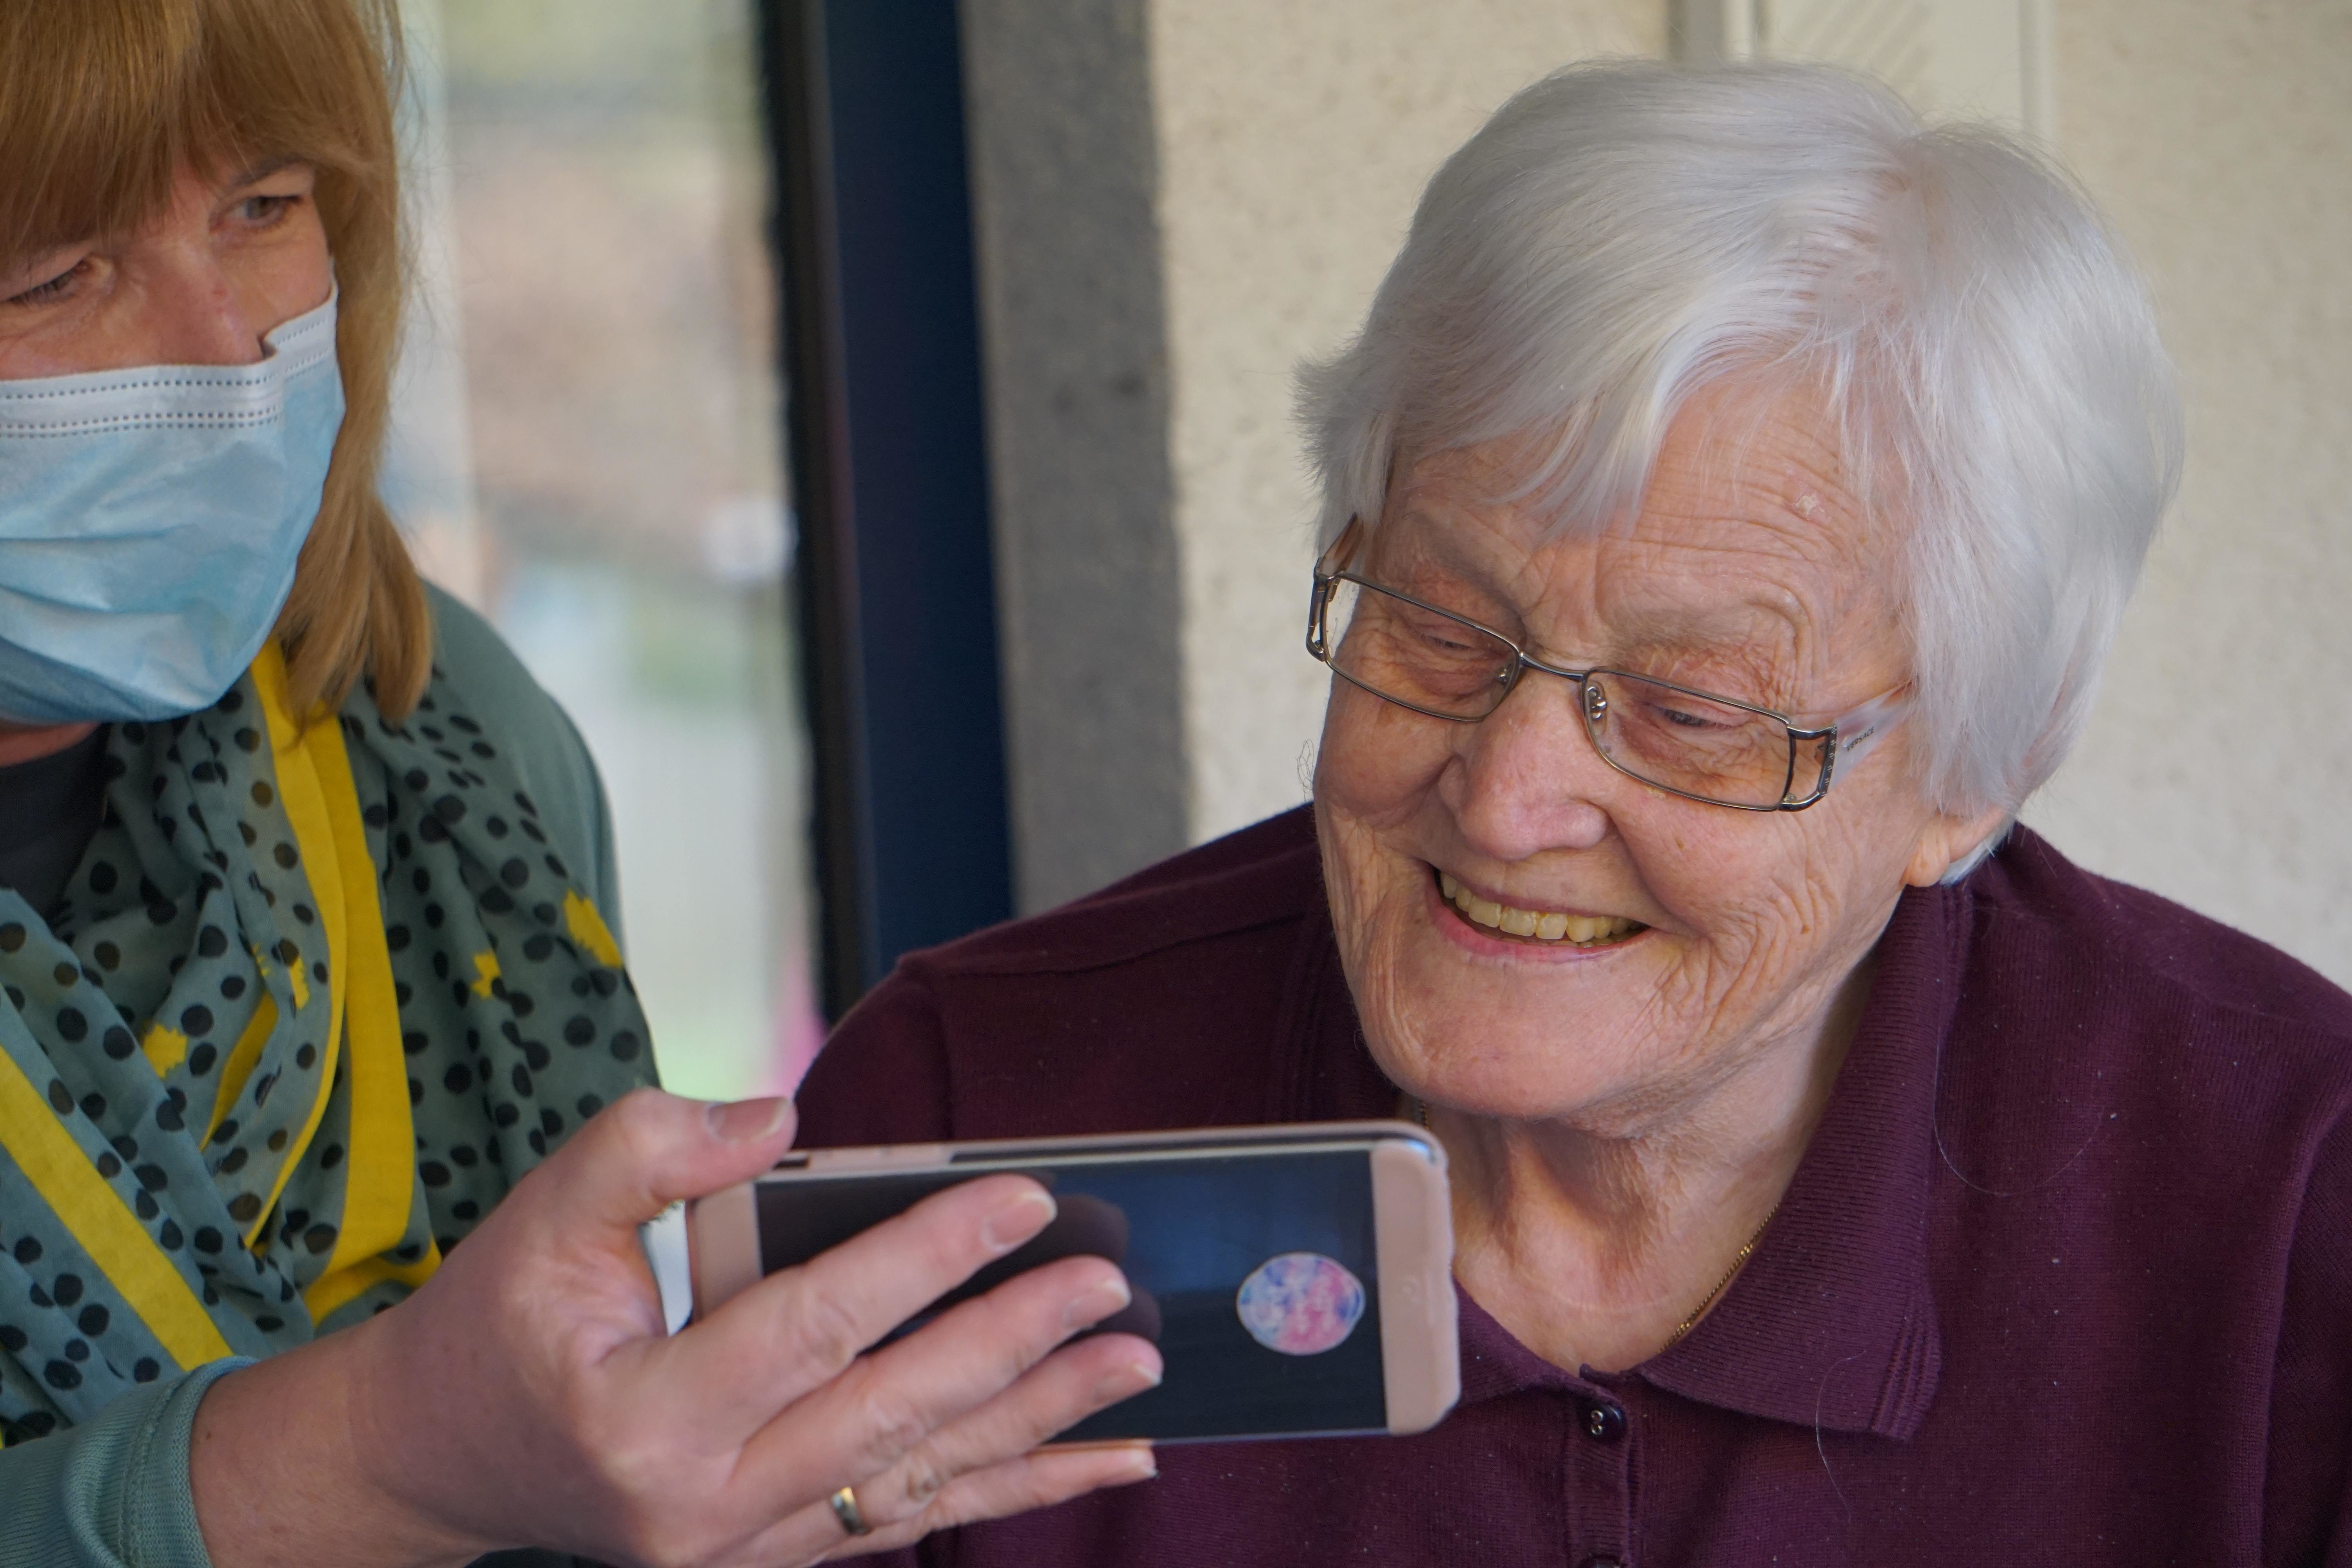 elderly woman with a smart phone during COVID-19